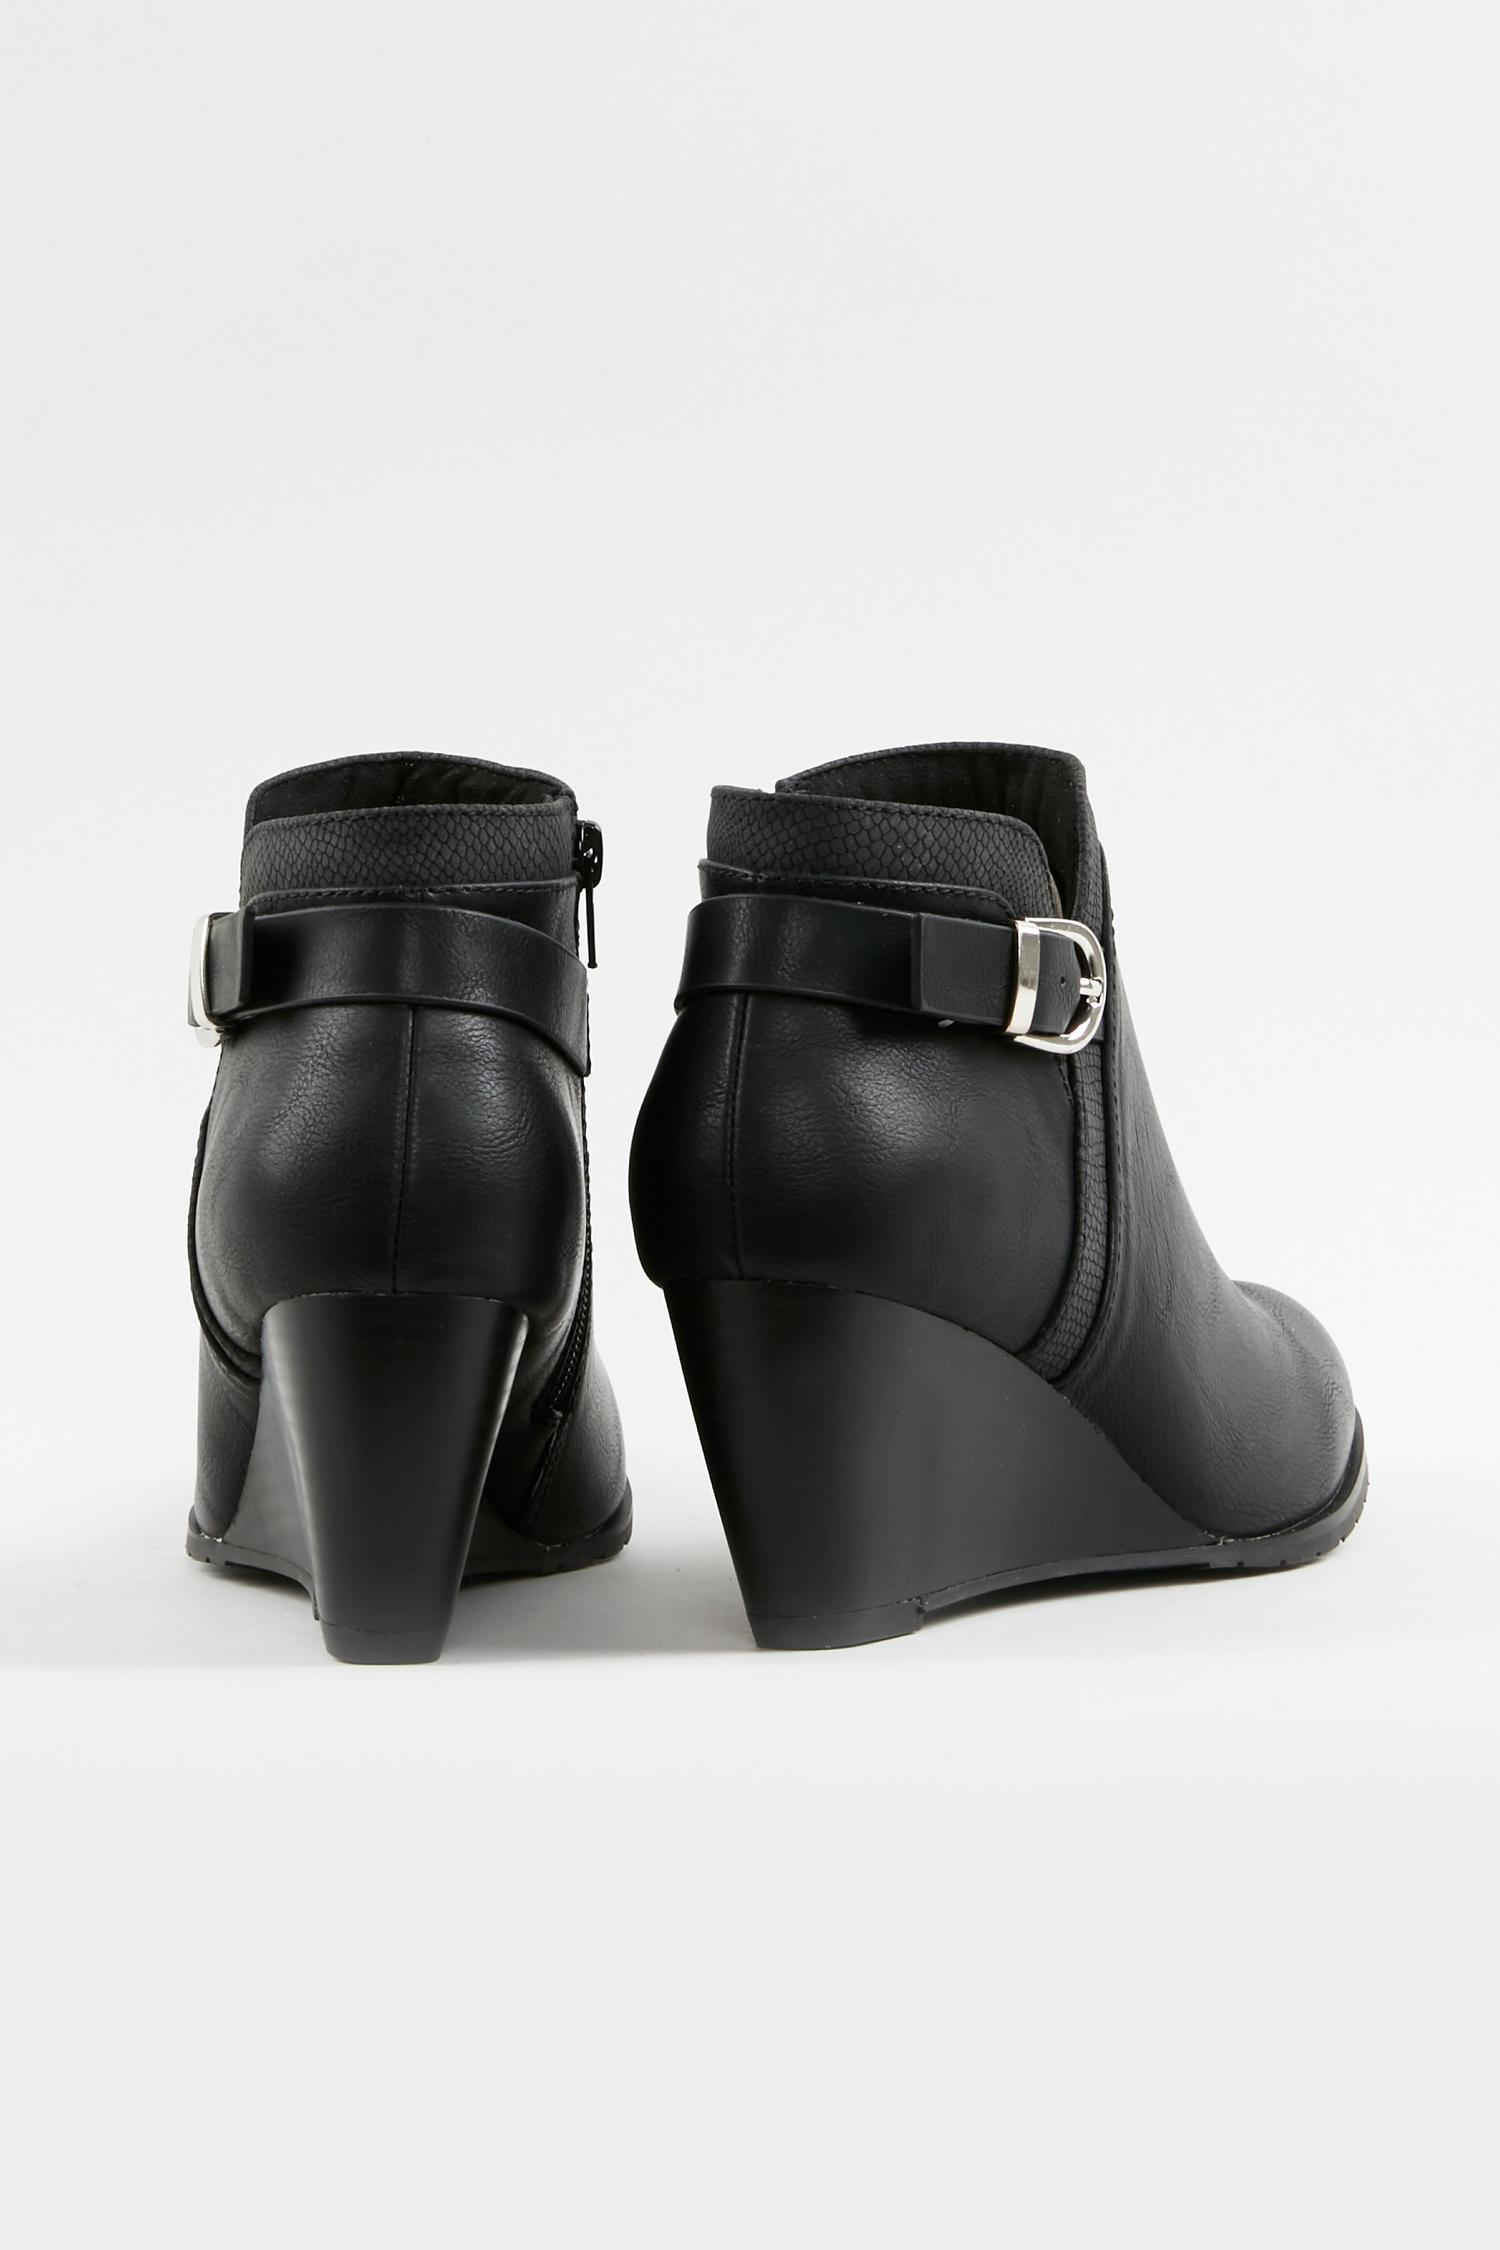 105 Wide Fit Black Buckle Wedge Boot image number 2